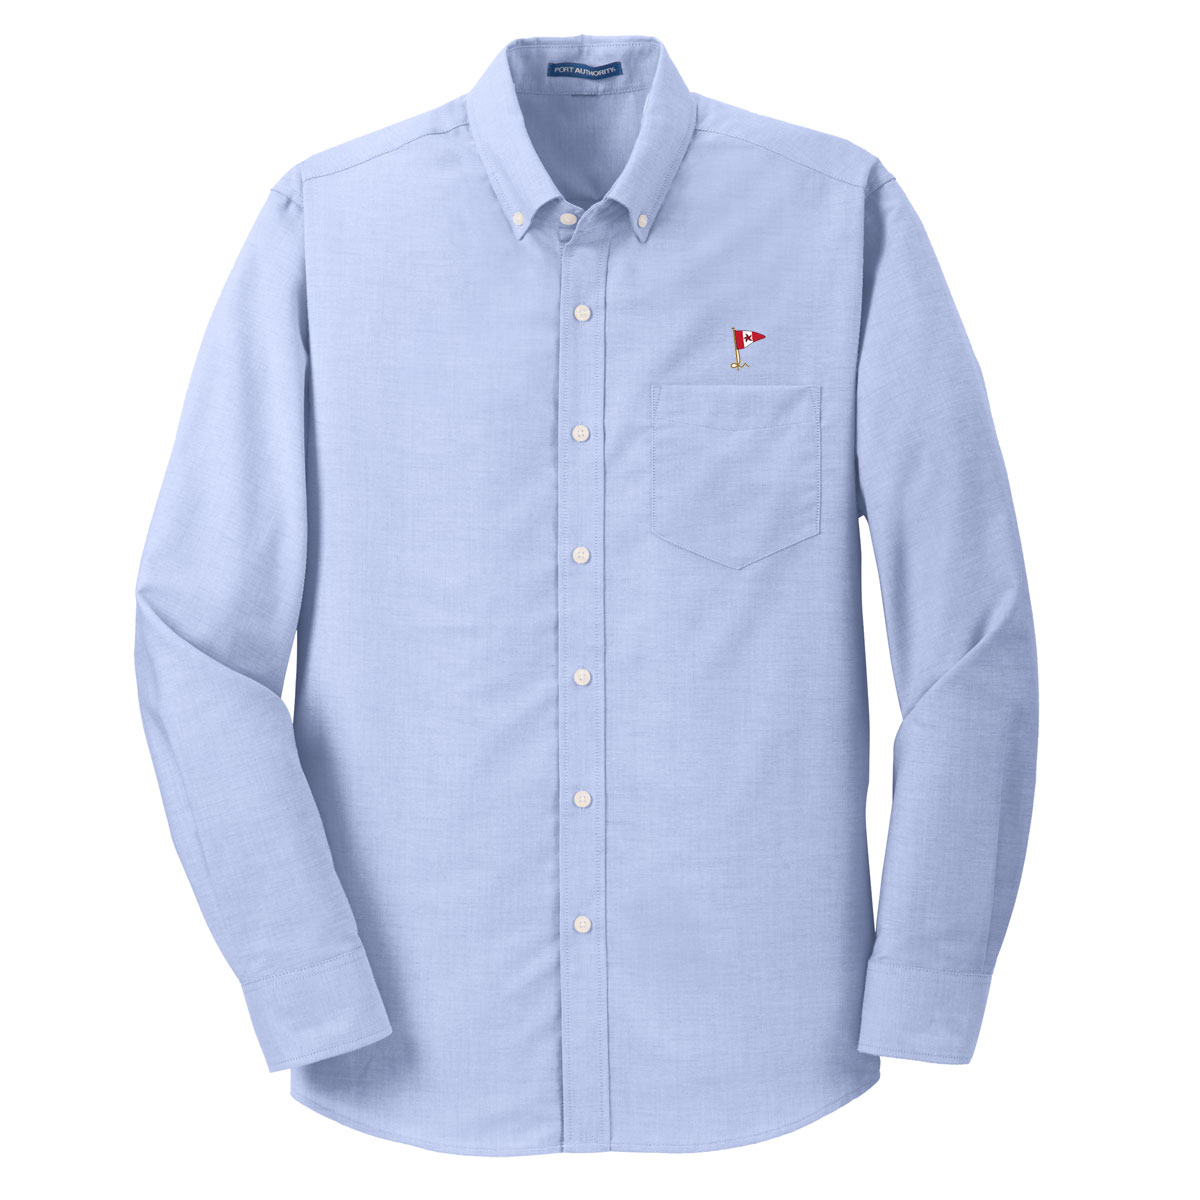 WHYC- M's Oxford Shirt